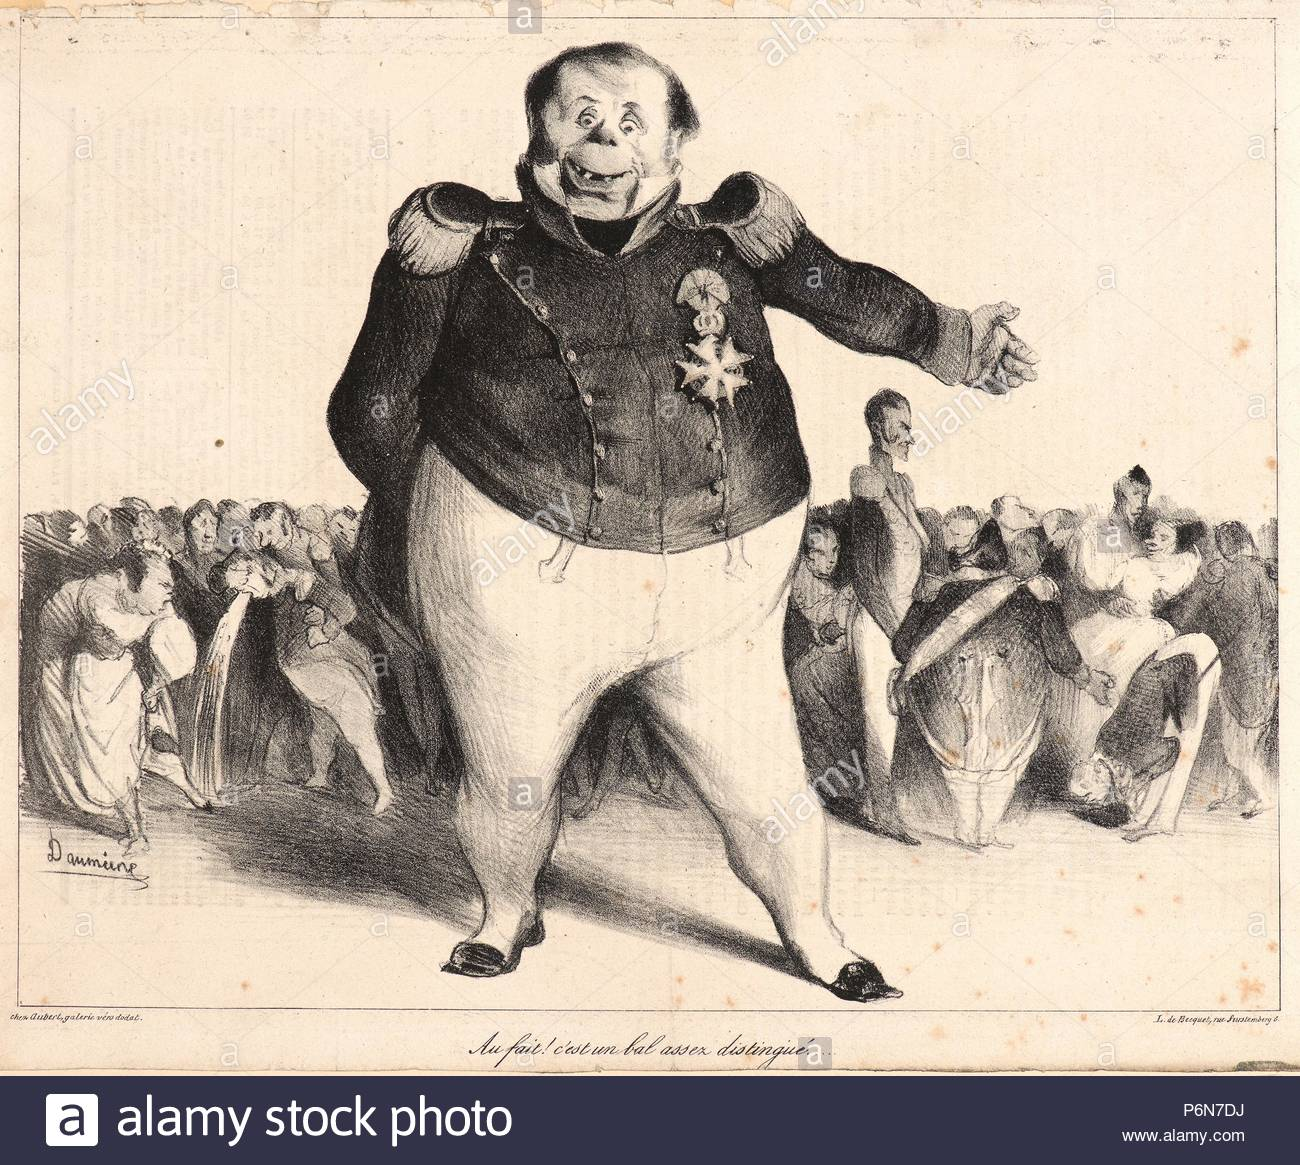 Honoré Daumier (French, 1808 - 1879). Au fait! C'est un bal assez distingue., 1833. Lithograph on newsprint paper. Image: 220 mm x 278 mm (8.66 in. x 10.94 in.). Only state. - Stock Image